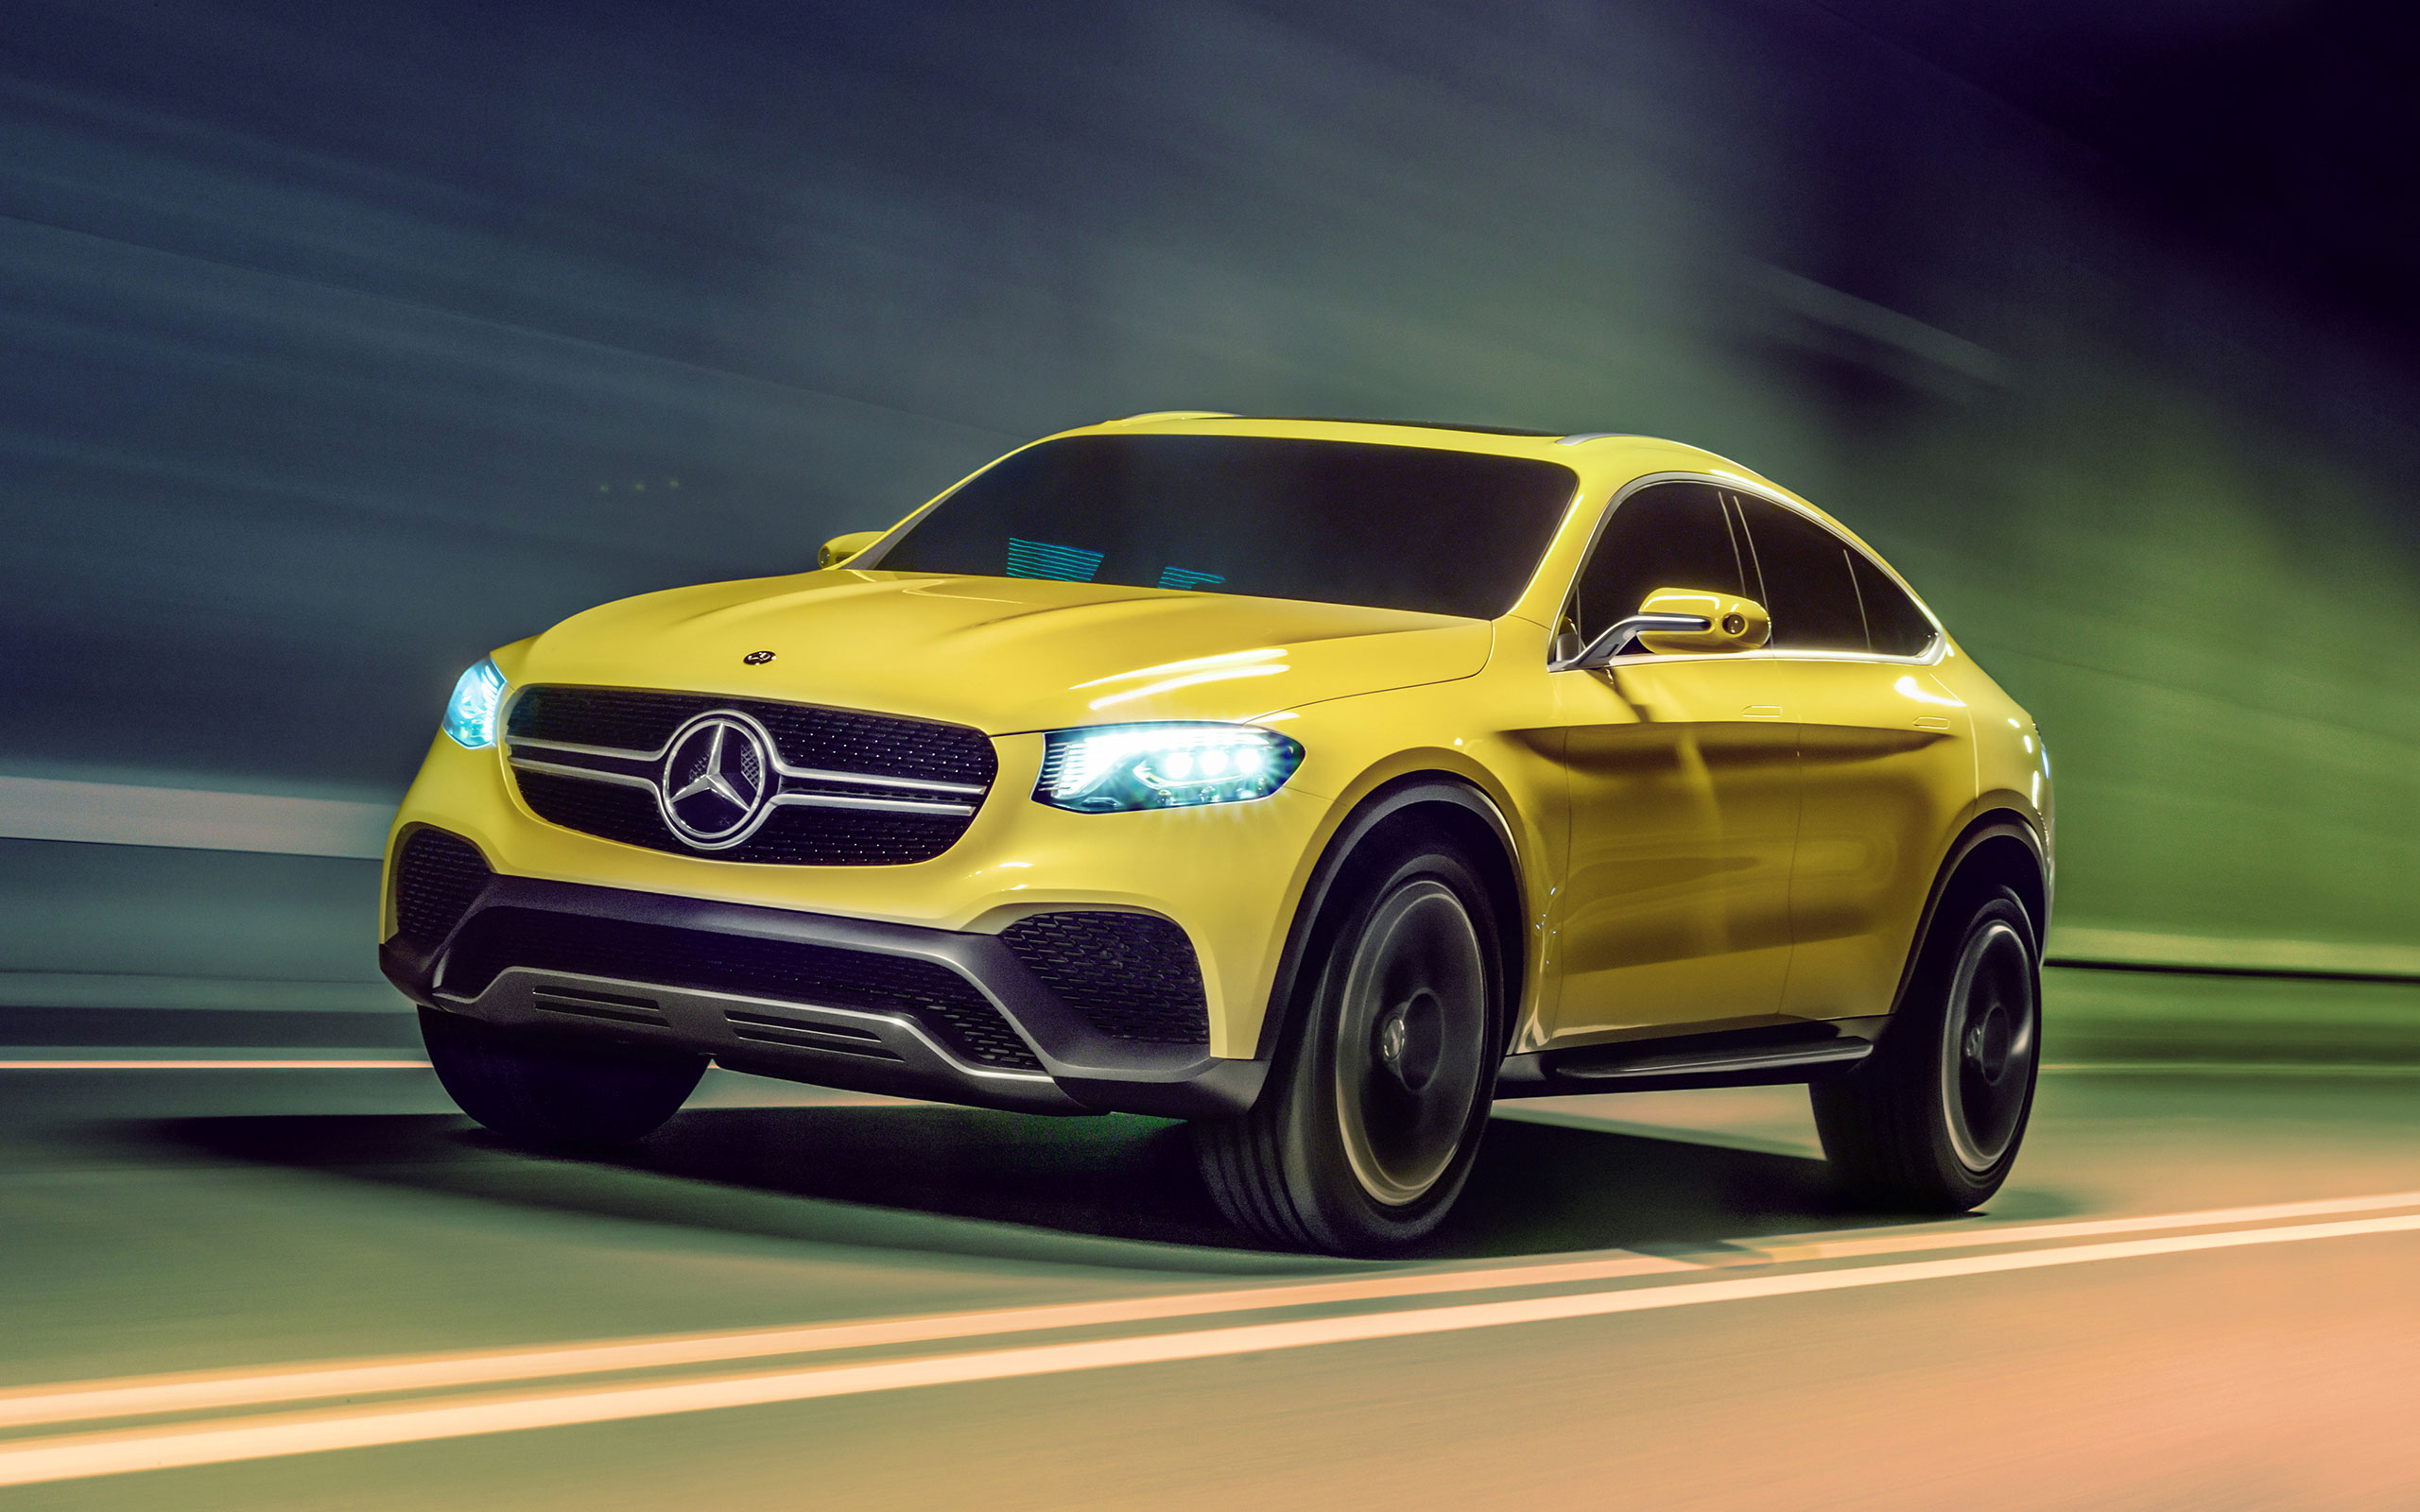 Mercedes benz glc 350 d coupe amg line 2016 wallpapers and hd images - Concept Glc Coupe